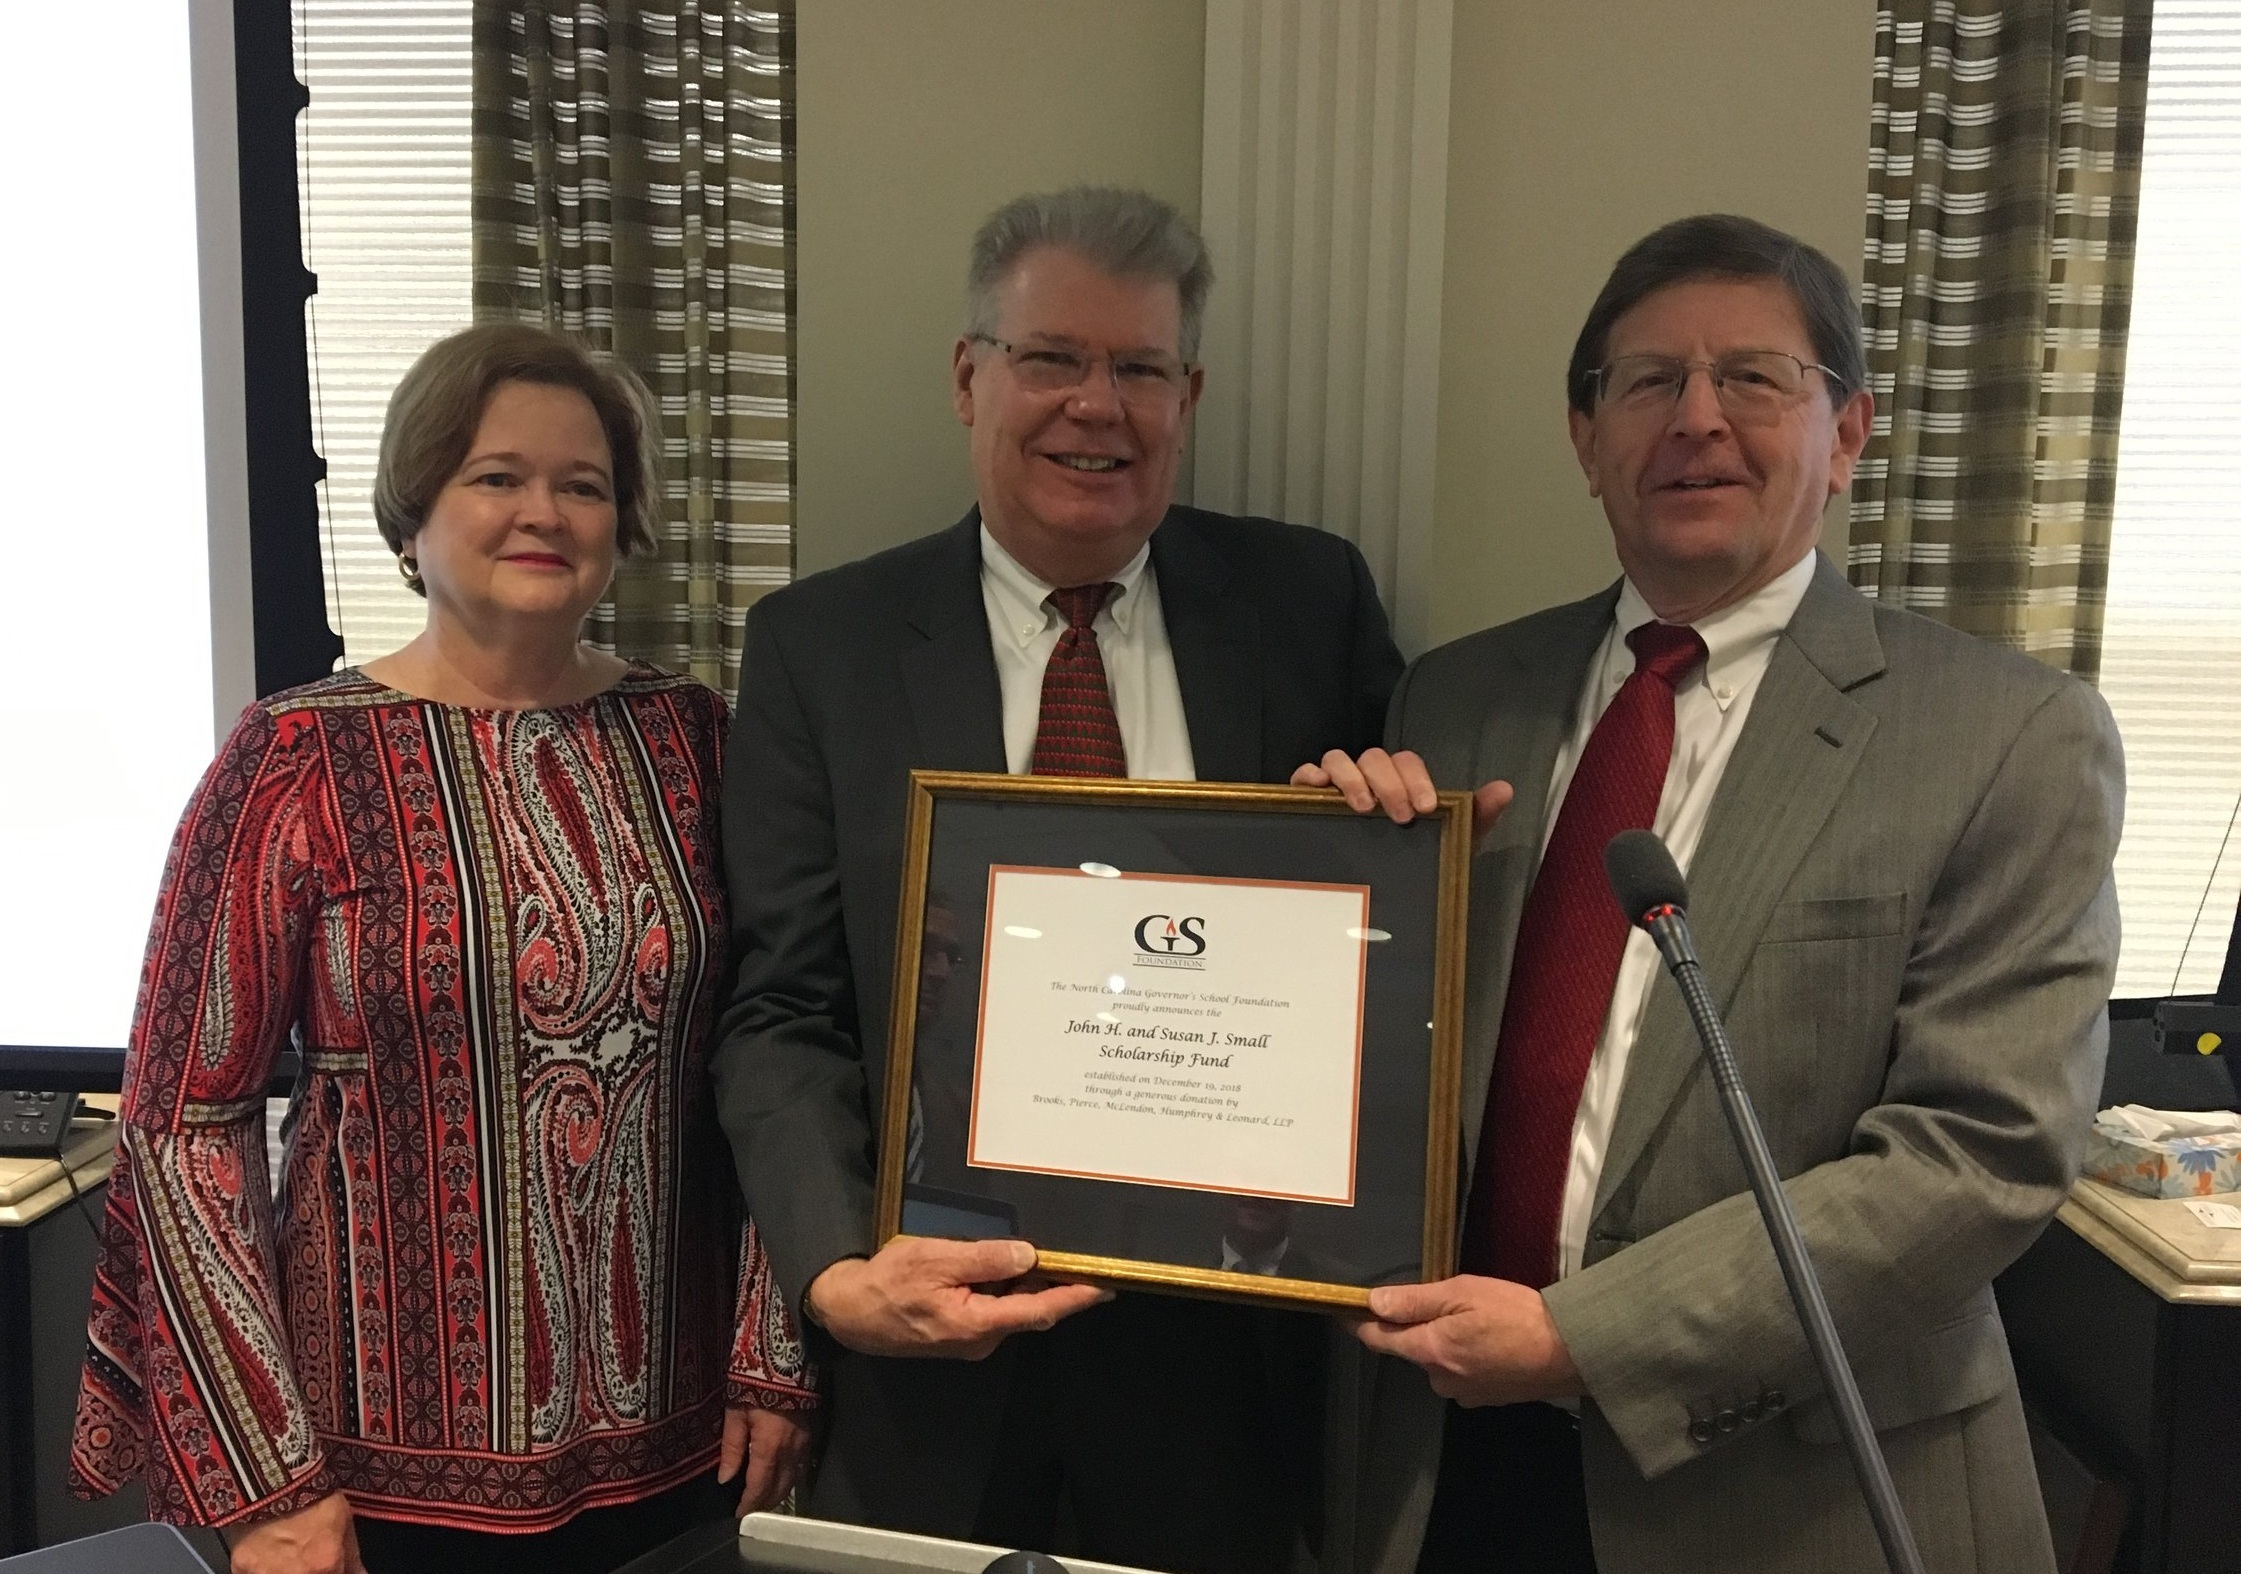 From Left to Right: Susan Small, John Small and Scott Gayle (past president of the NC Governor's School Foundation).